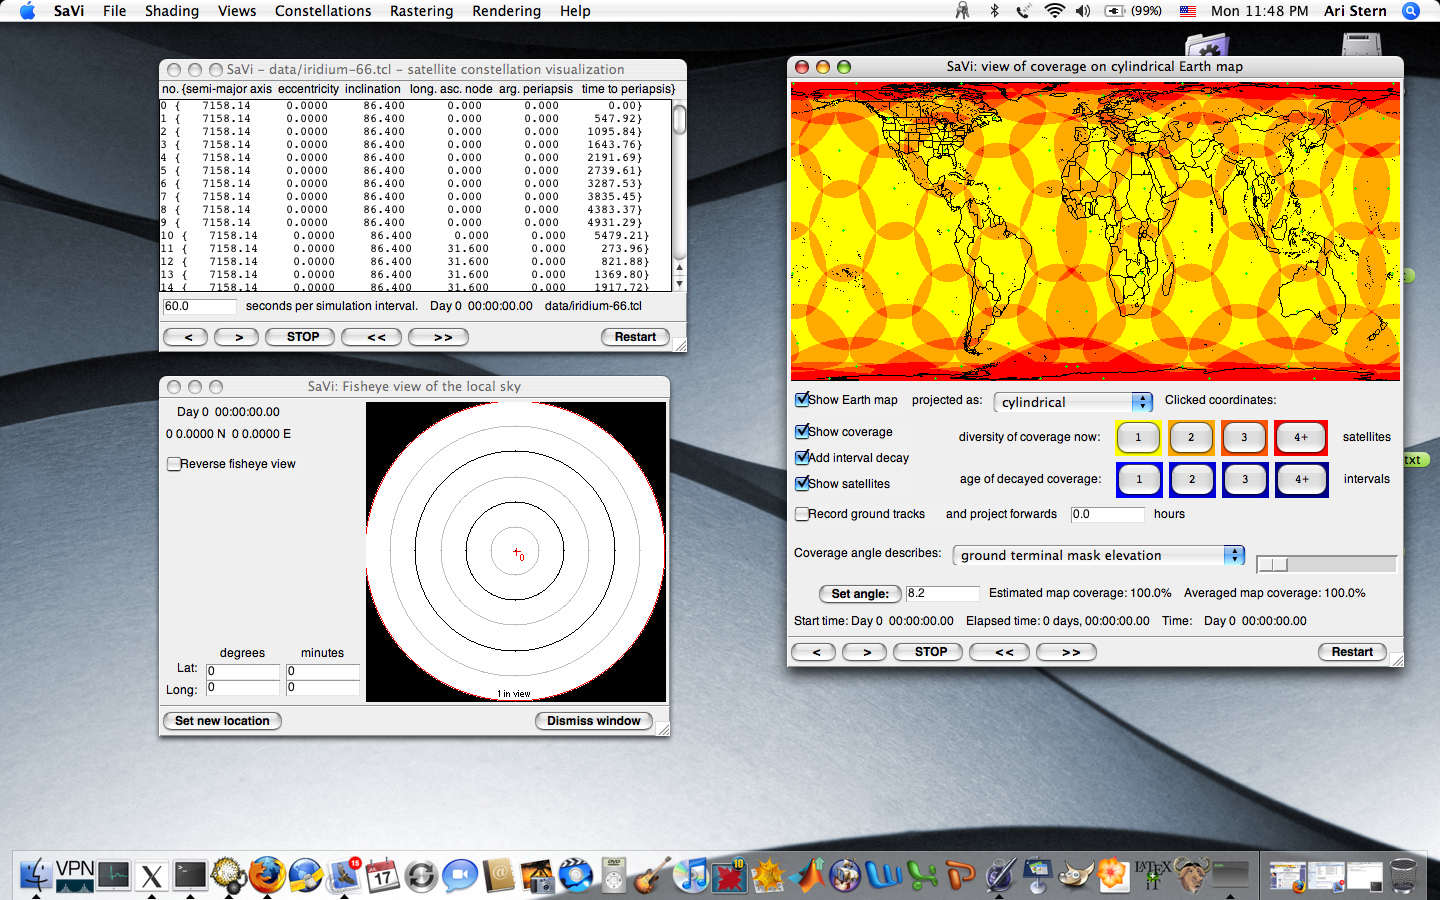 SaVi running on Mac OS X 10.4 (Tiger)